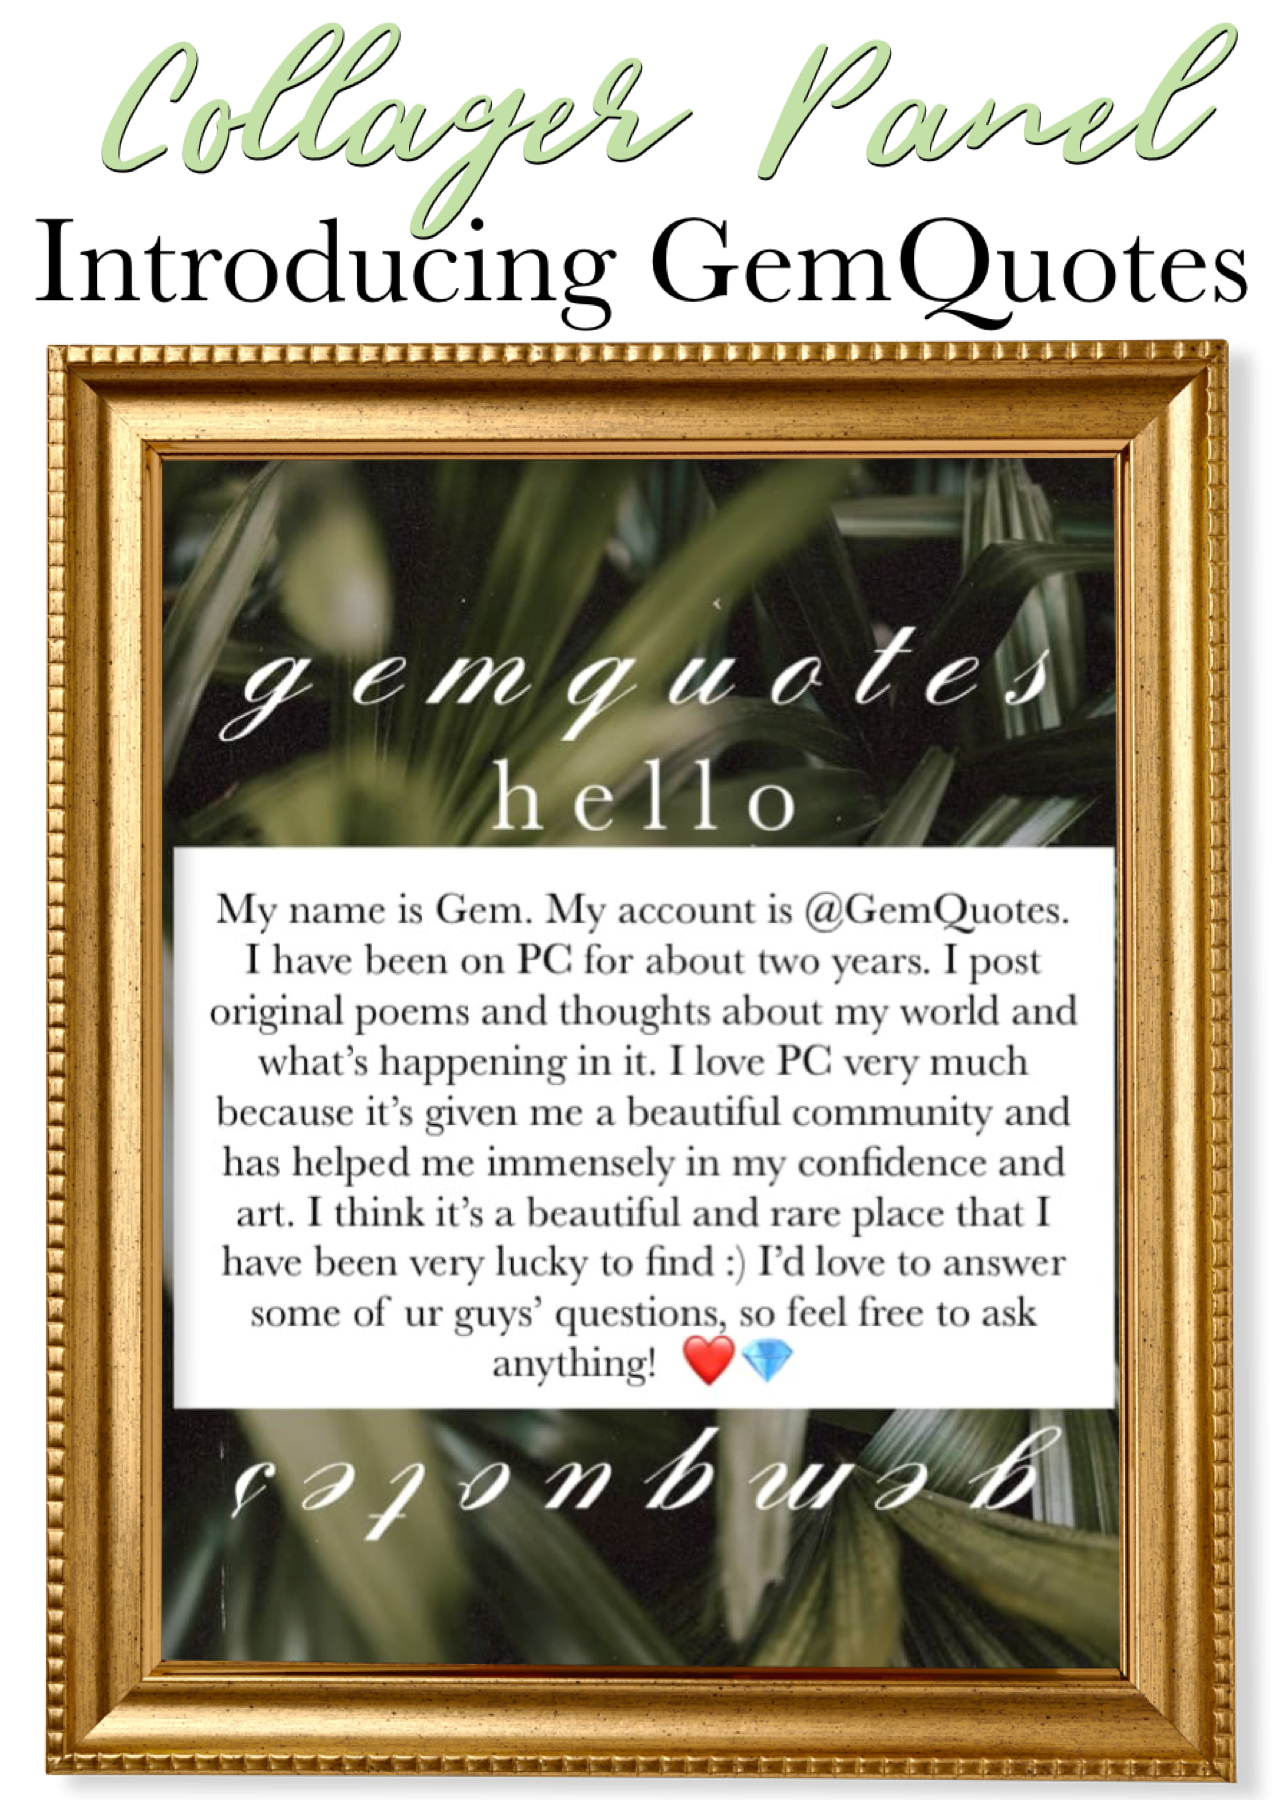 Introducing GemQuotes! Welcome to the Panel!